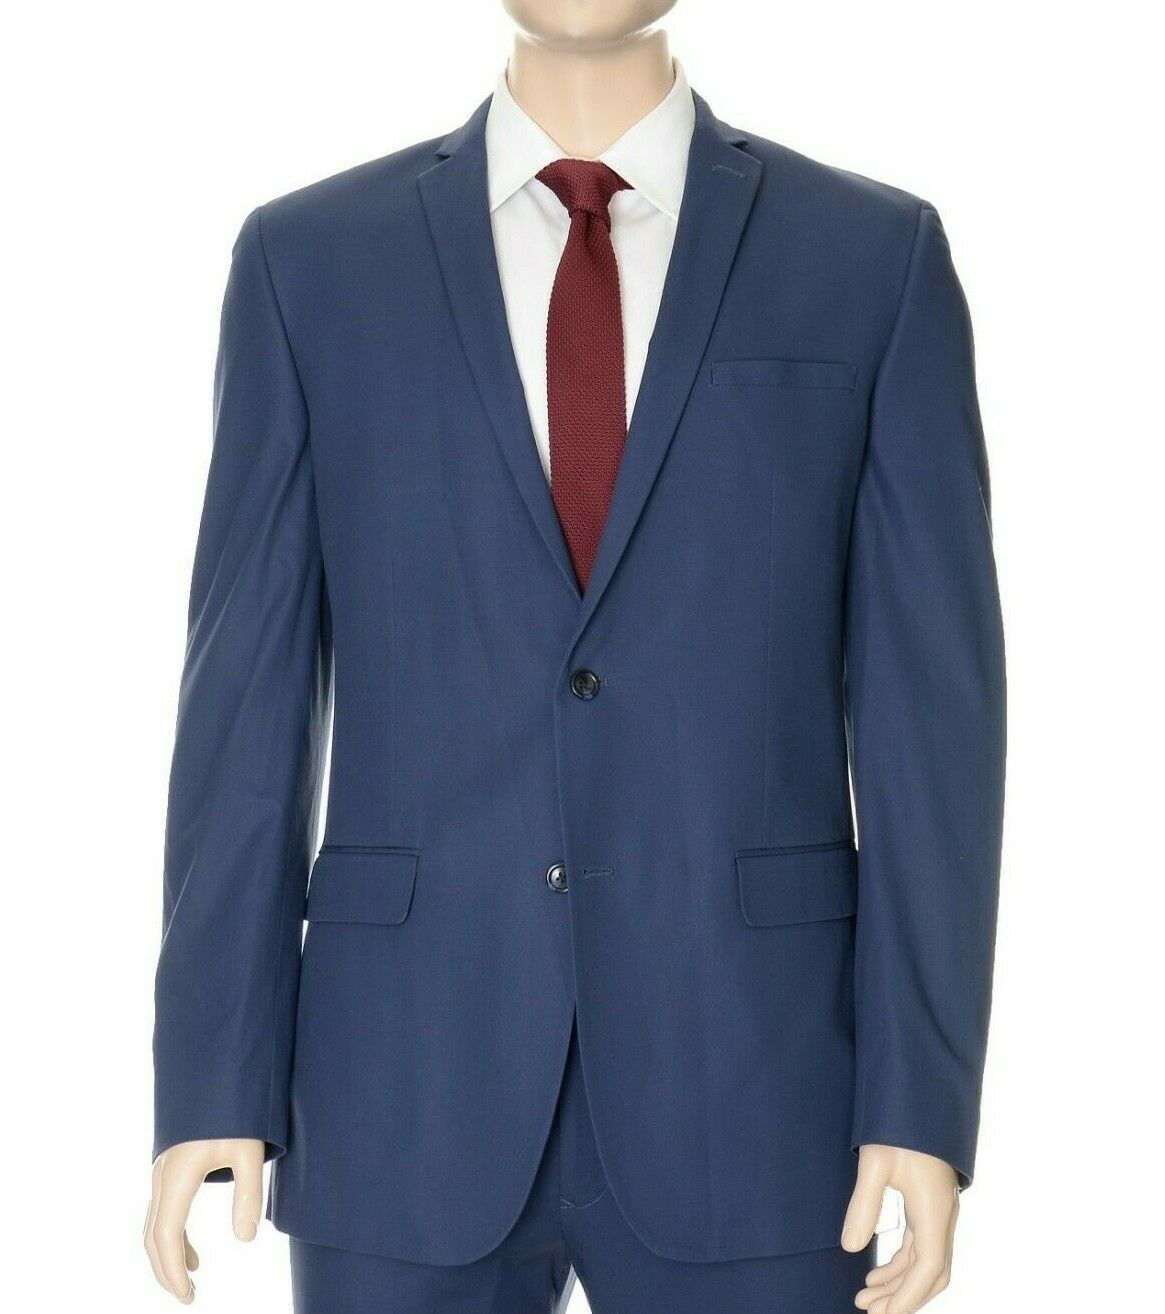 Bar III Slim Fit Solid Blau Two Button Cotton Blend Blazer Sportcoat 40L